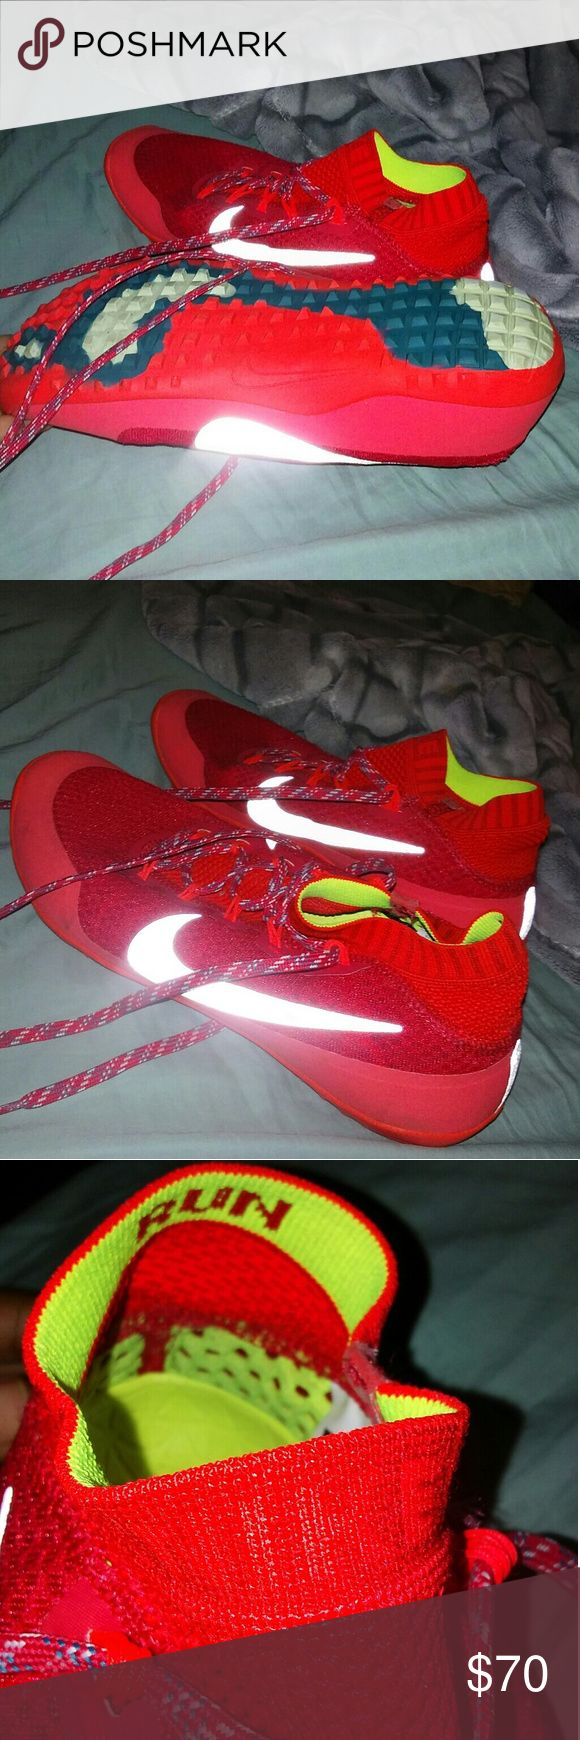 nike sprinting shoes only worn once for a 100 meter dash // honestly amazing shoes especially for s sprinter Nike Shoes Athletic Shoes